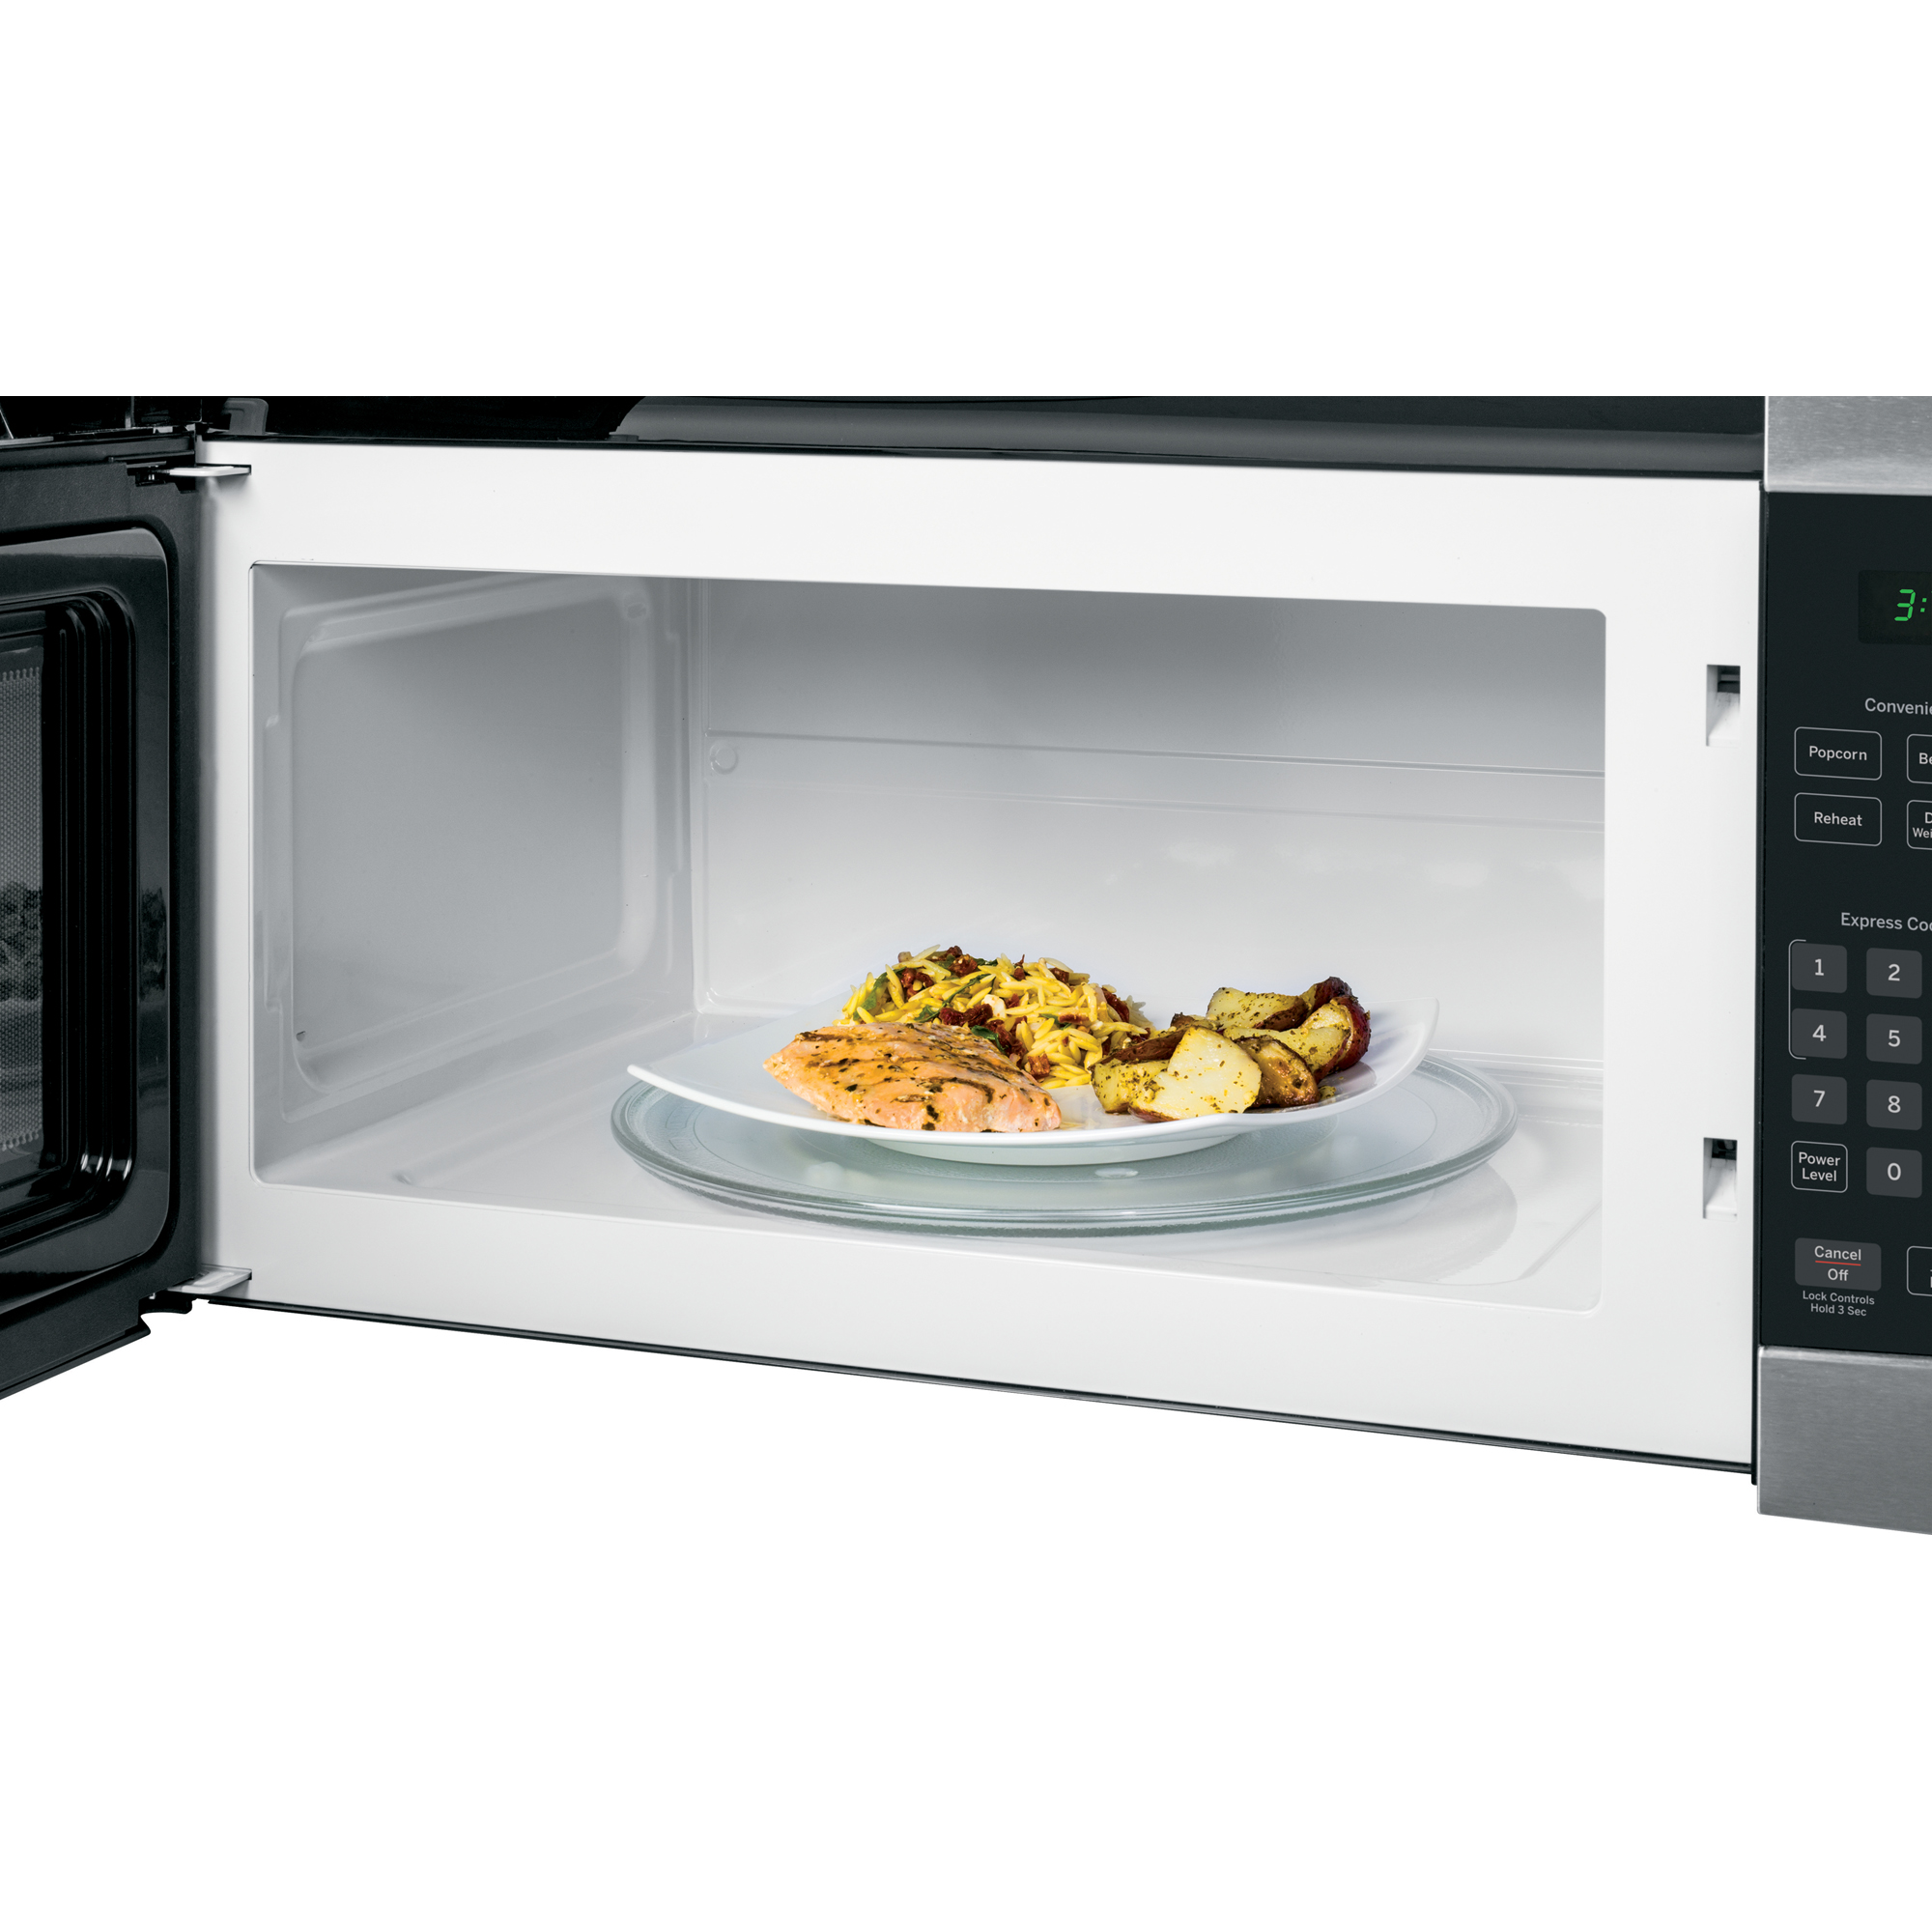 GE Appliances JVM3160RFSS 1.6 cu. ft. Over-the-Range Microwave Oven - Stainless Steel